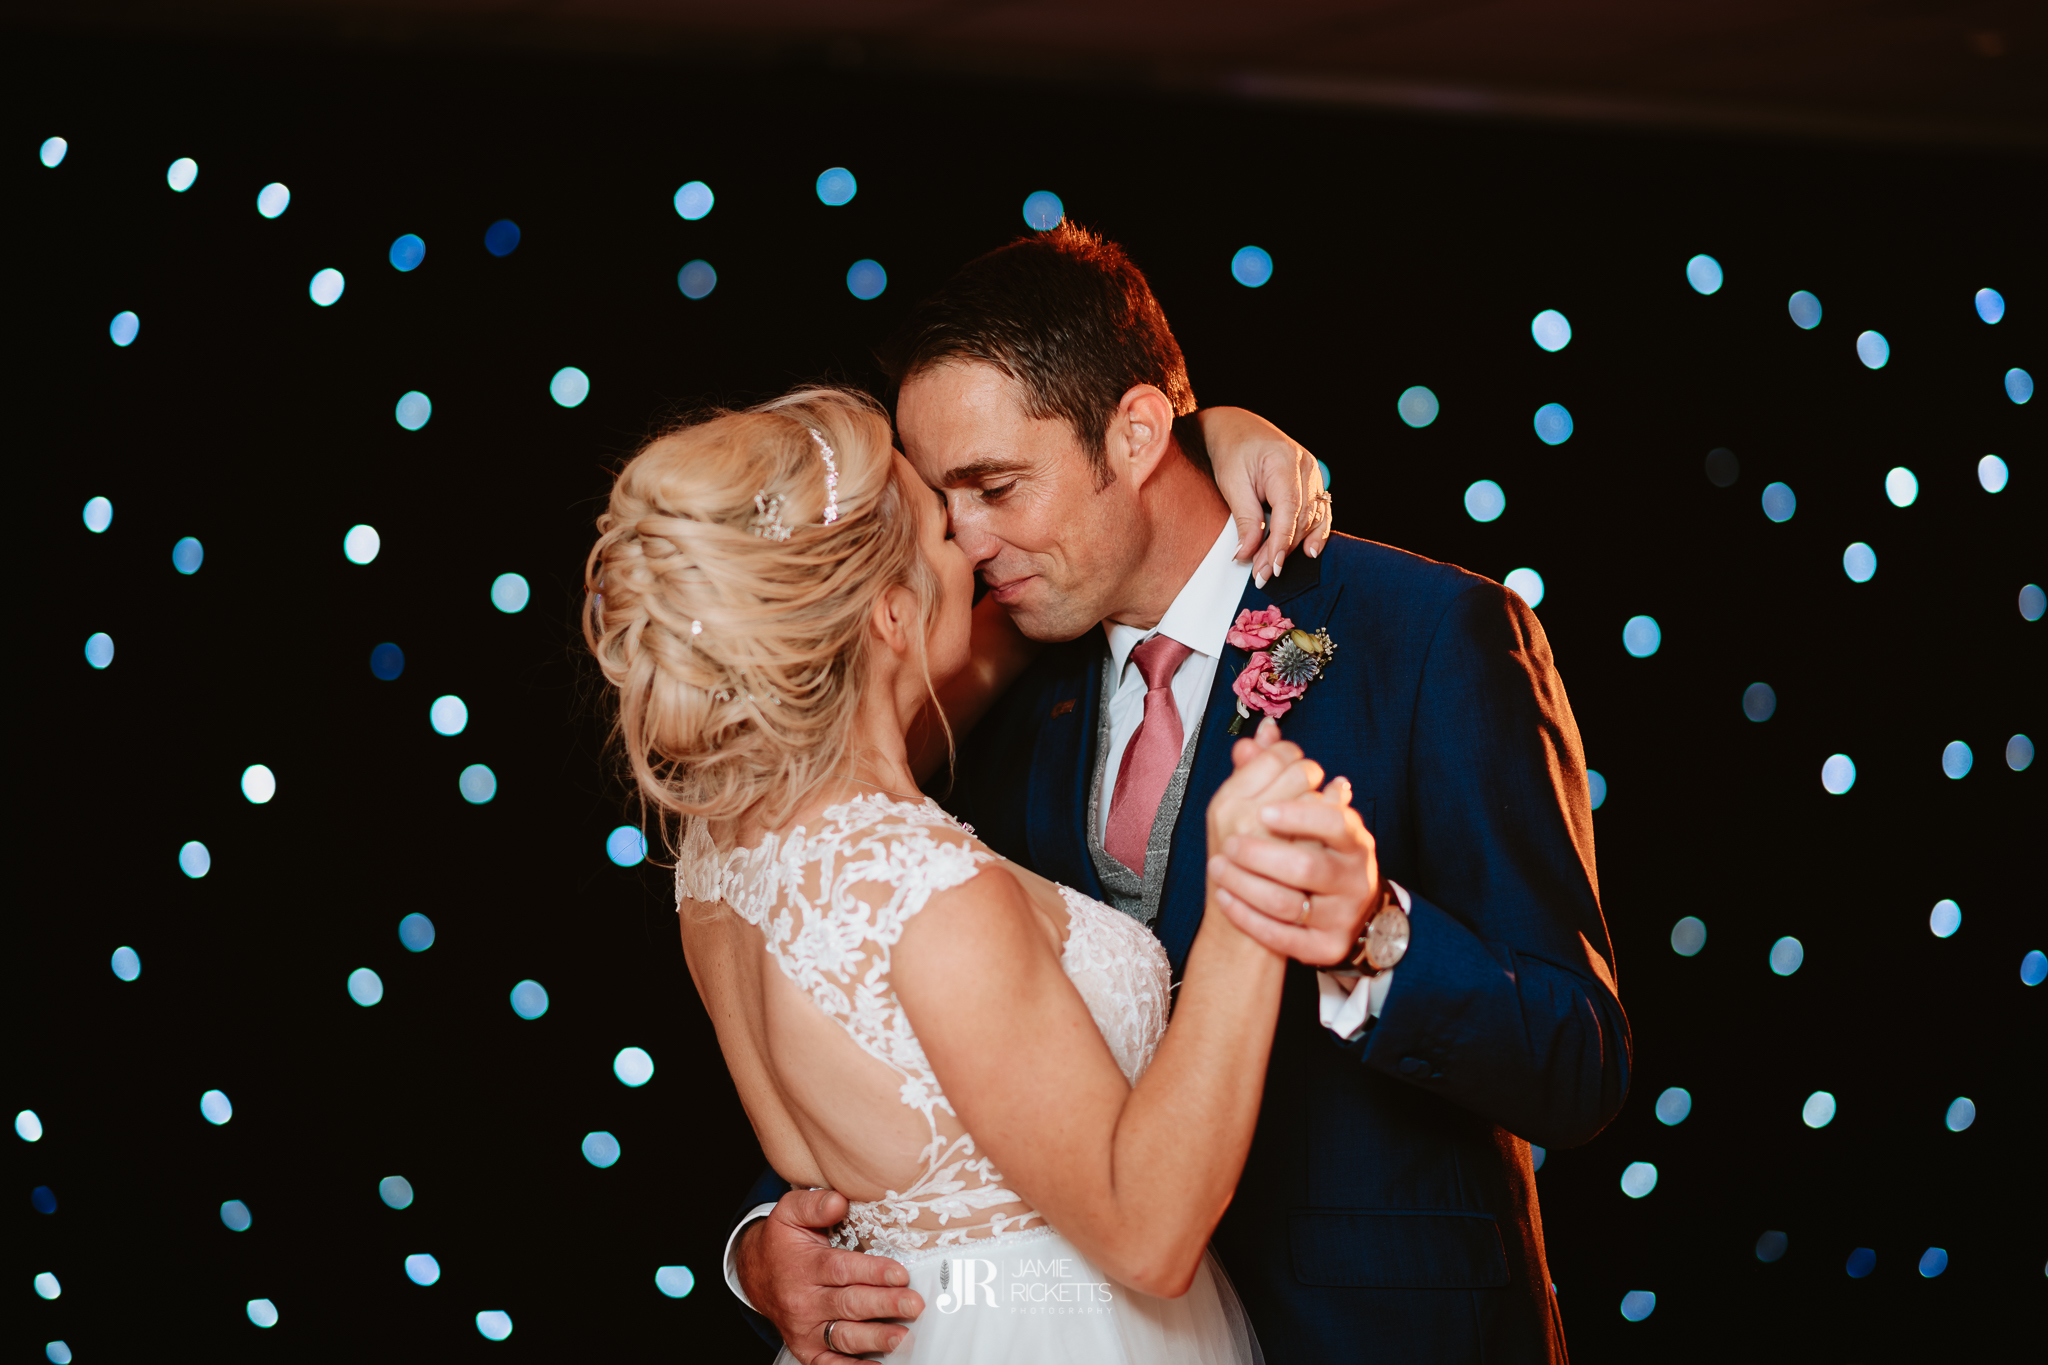 Wroxeter-Hotel-Wedding-Photography-In-Shropshire-By-Shropshire-Wedding-Photographer-Jamie-Ricketts-215.JPG